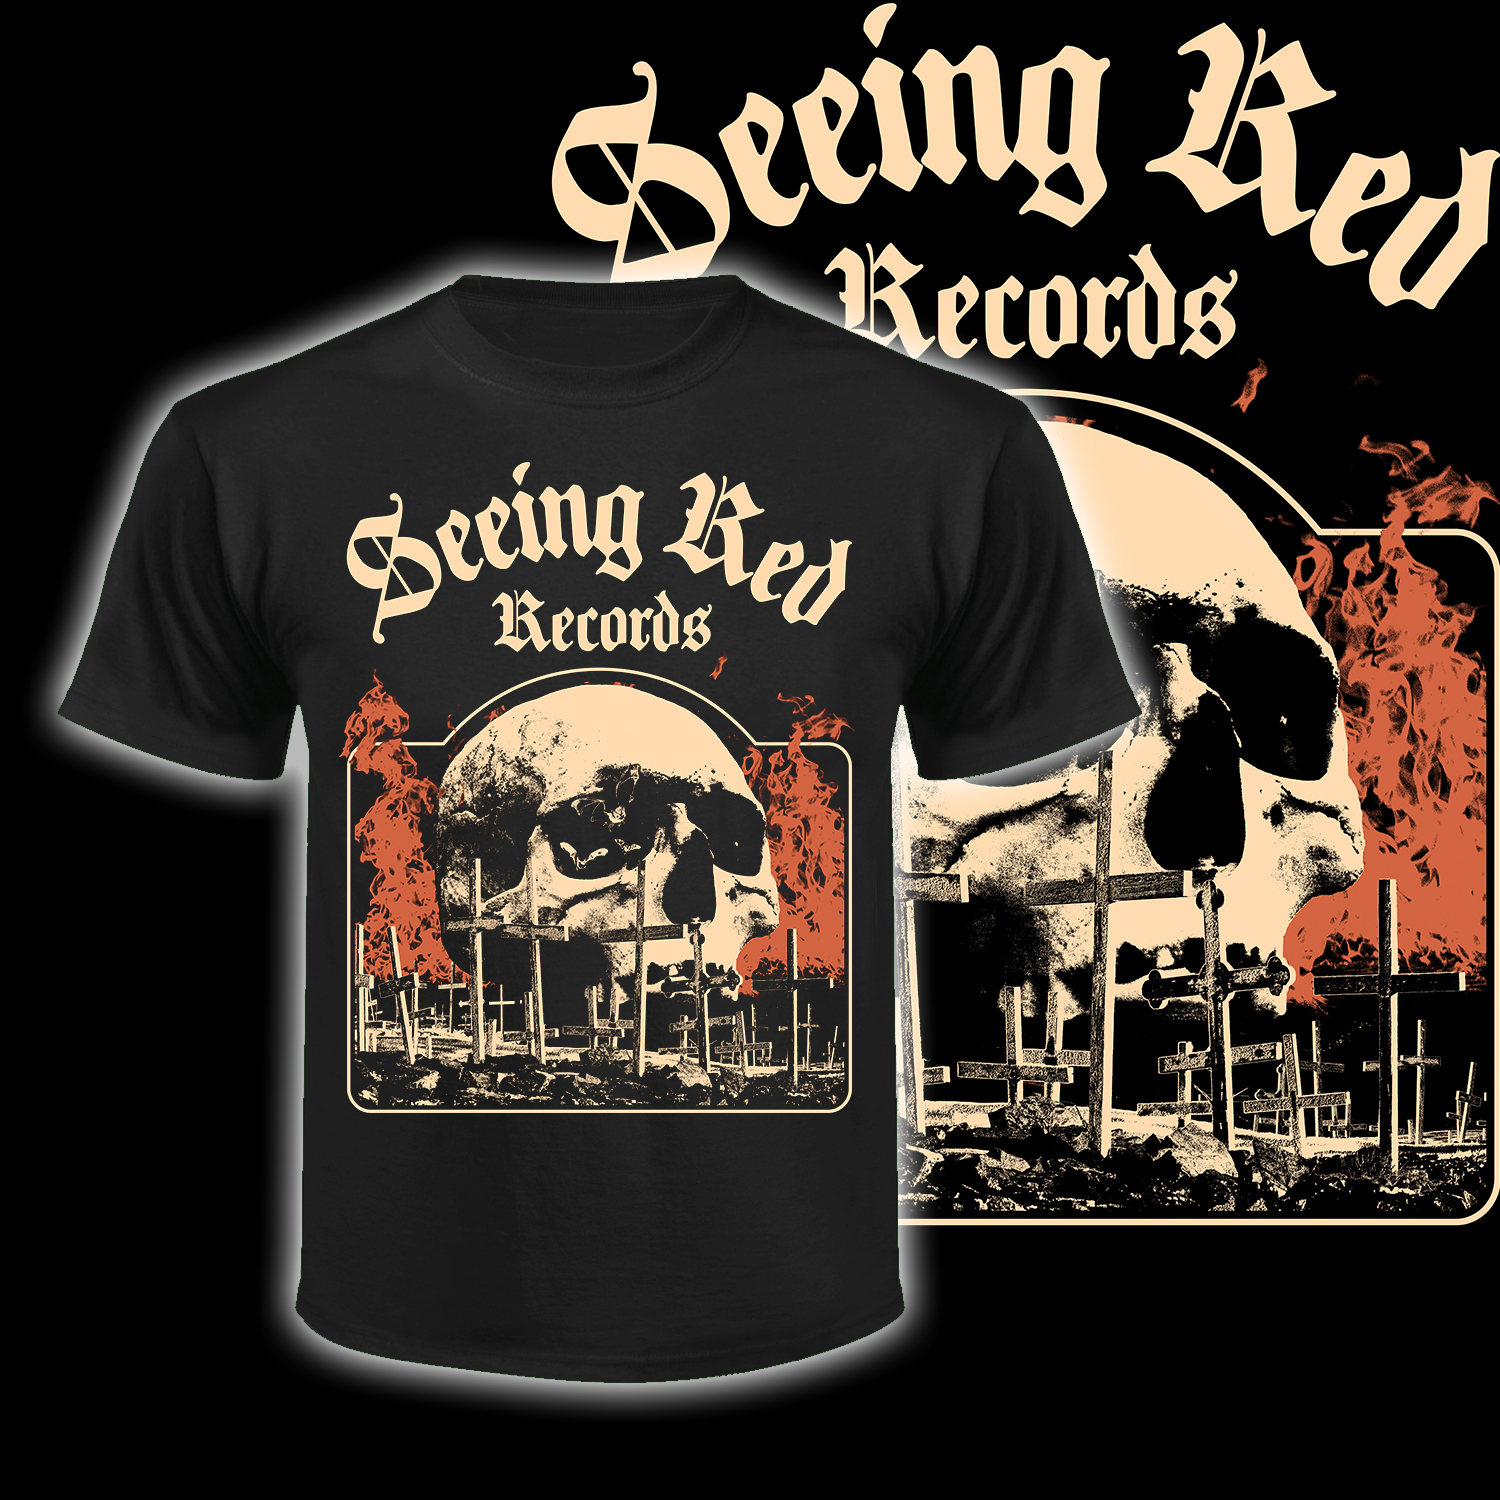 Seeing Red Records - Funeral Pyre